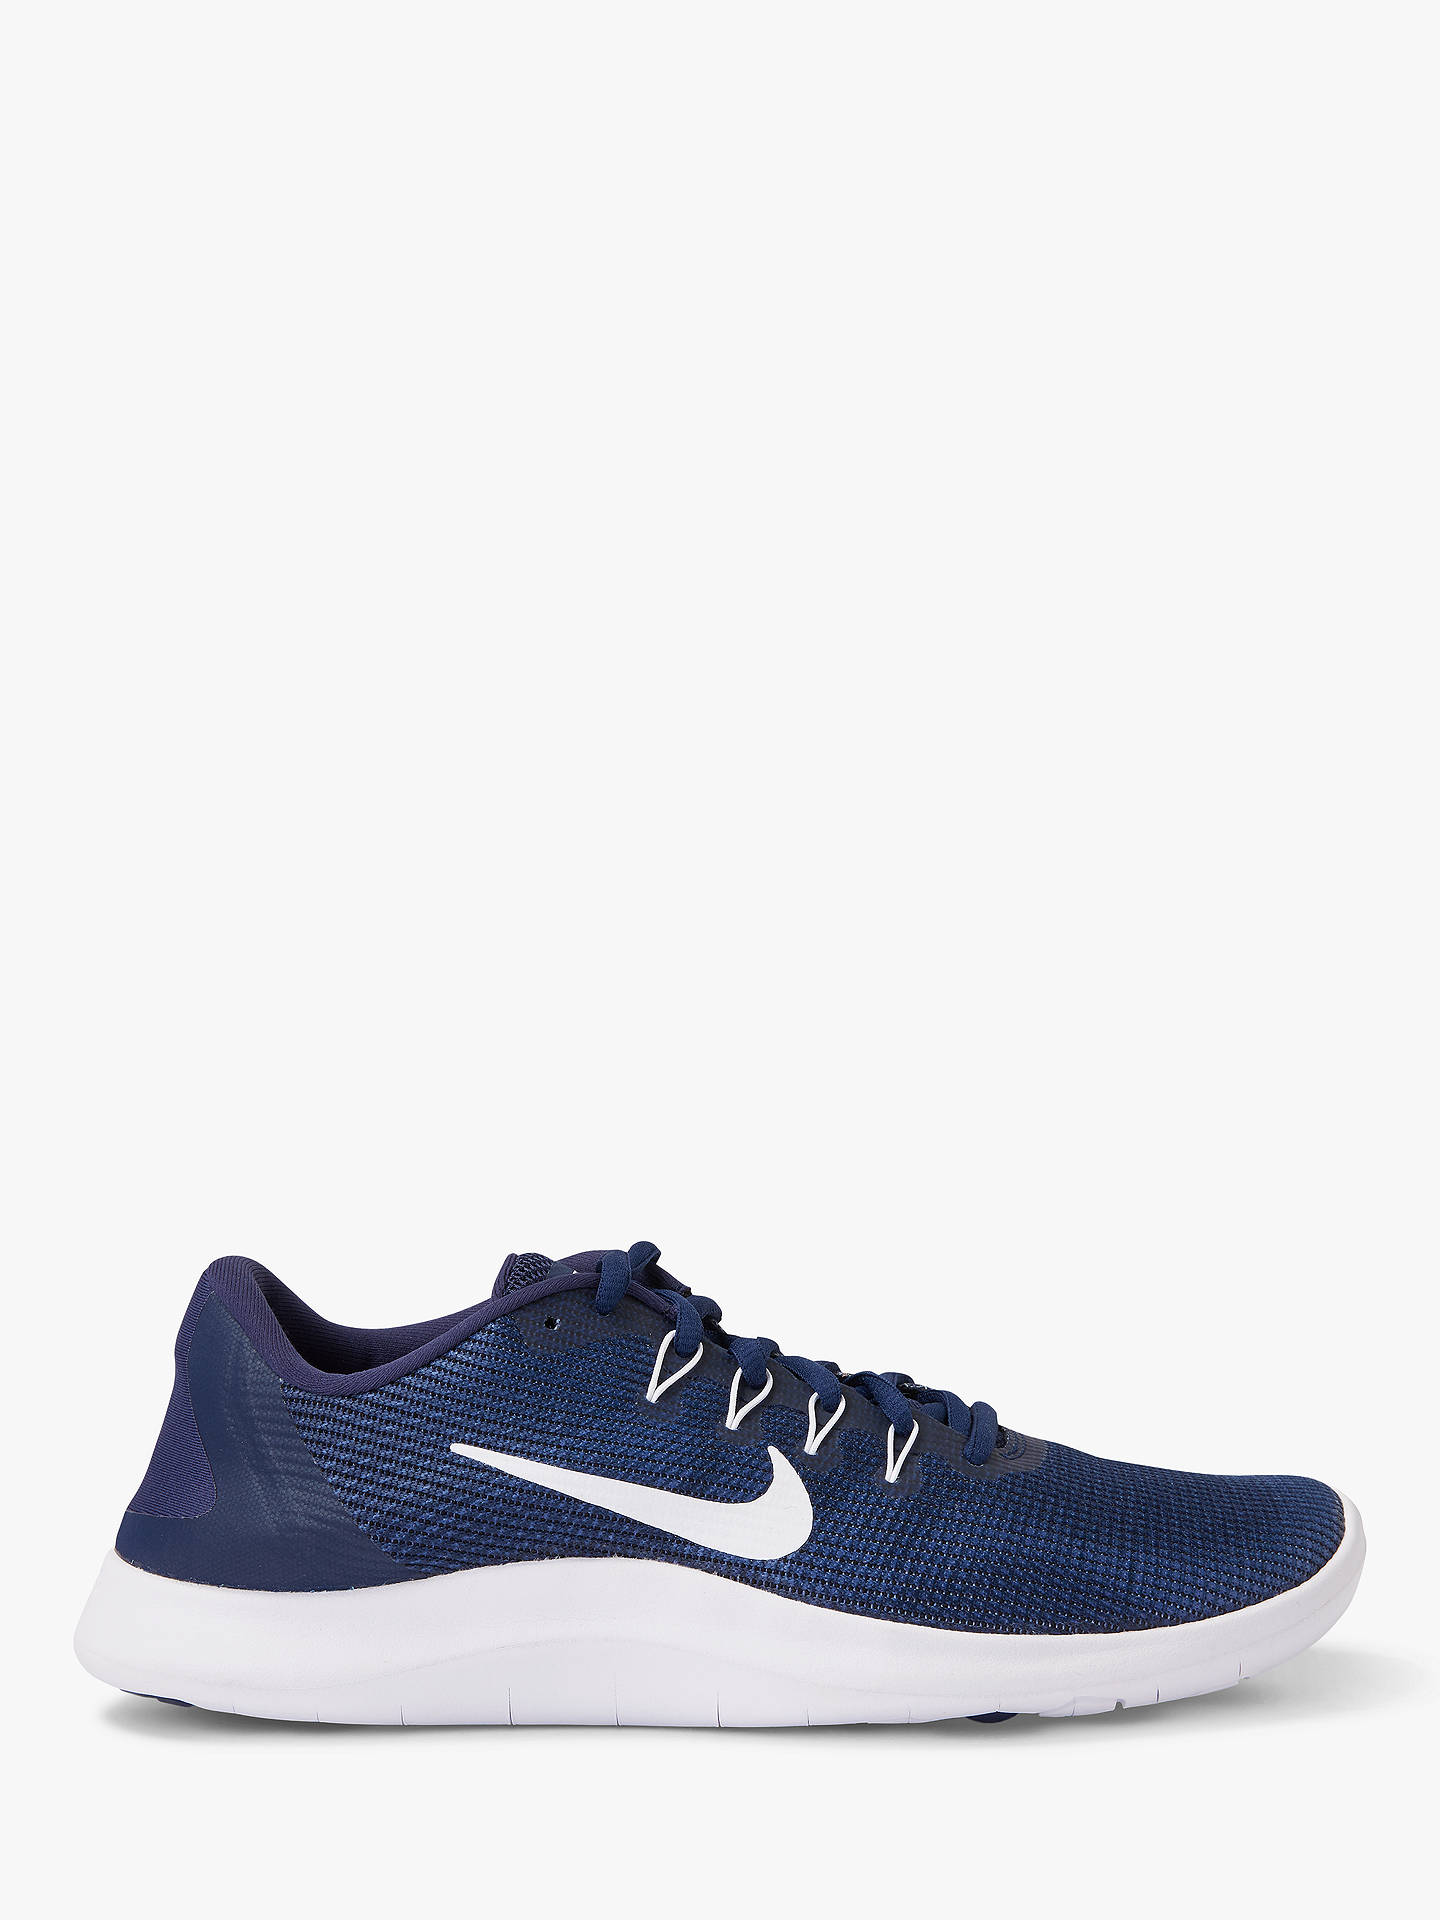 c6ed52055533 Buy Nike Flex RN 2018 Men s Running Shoes